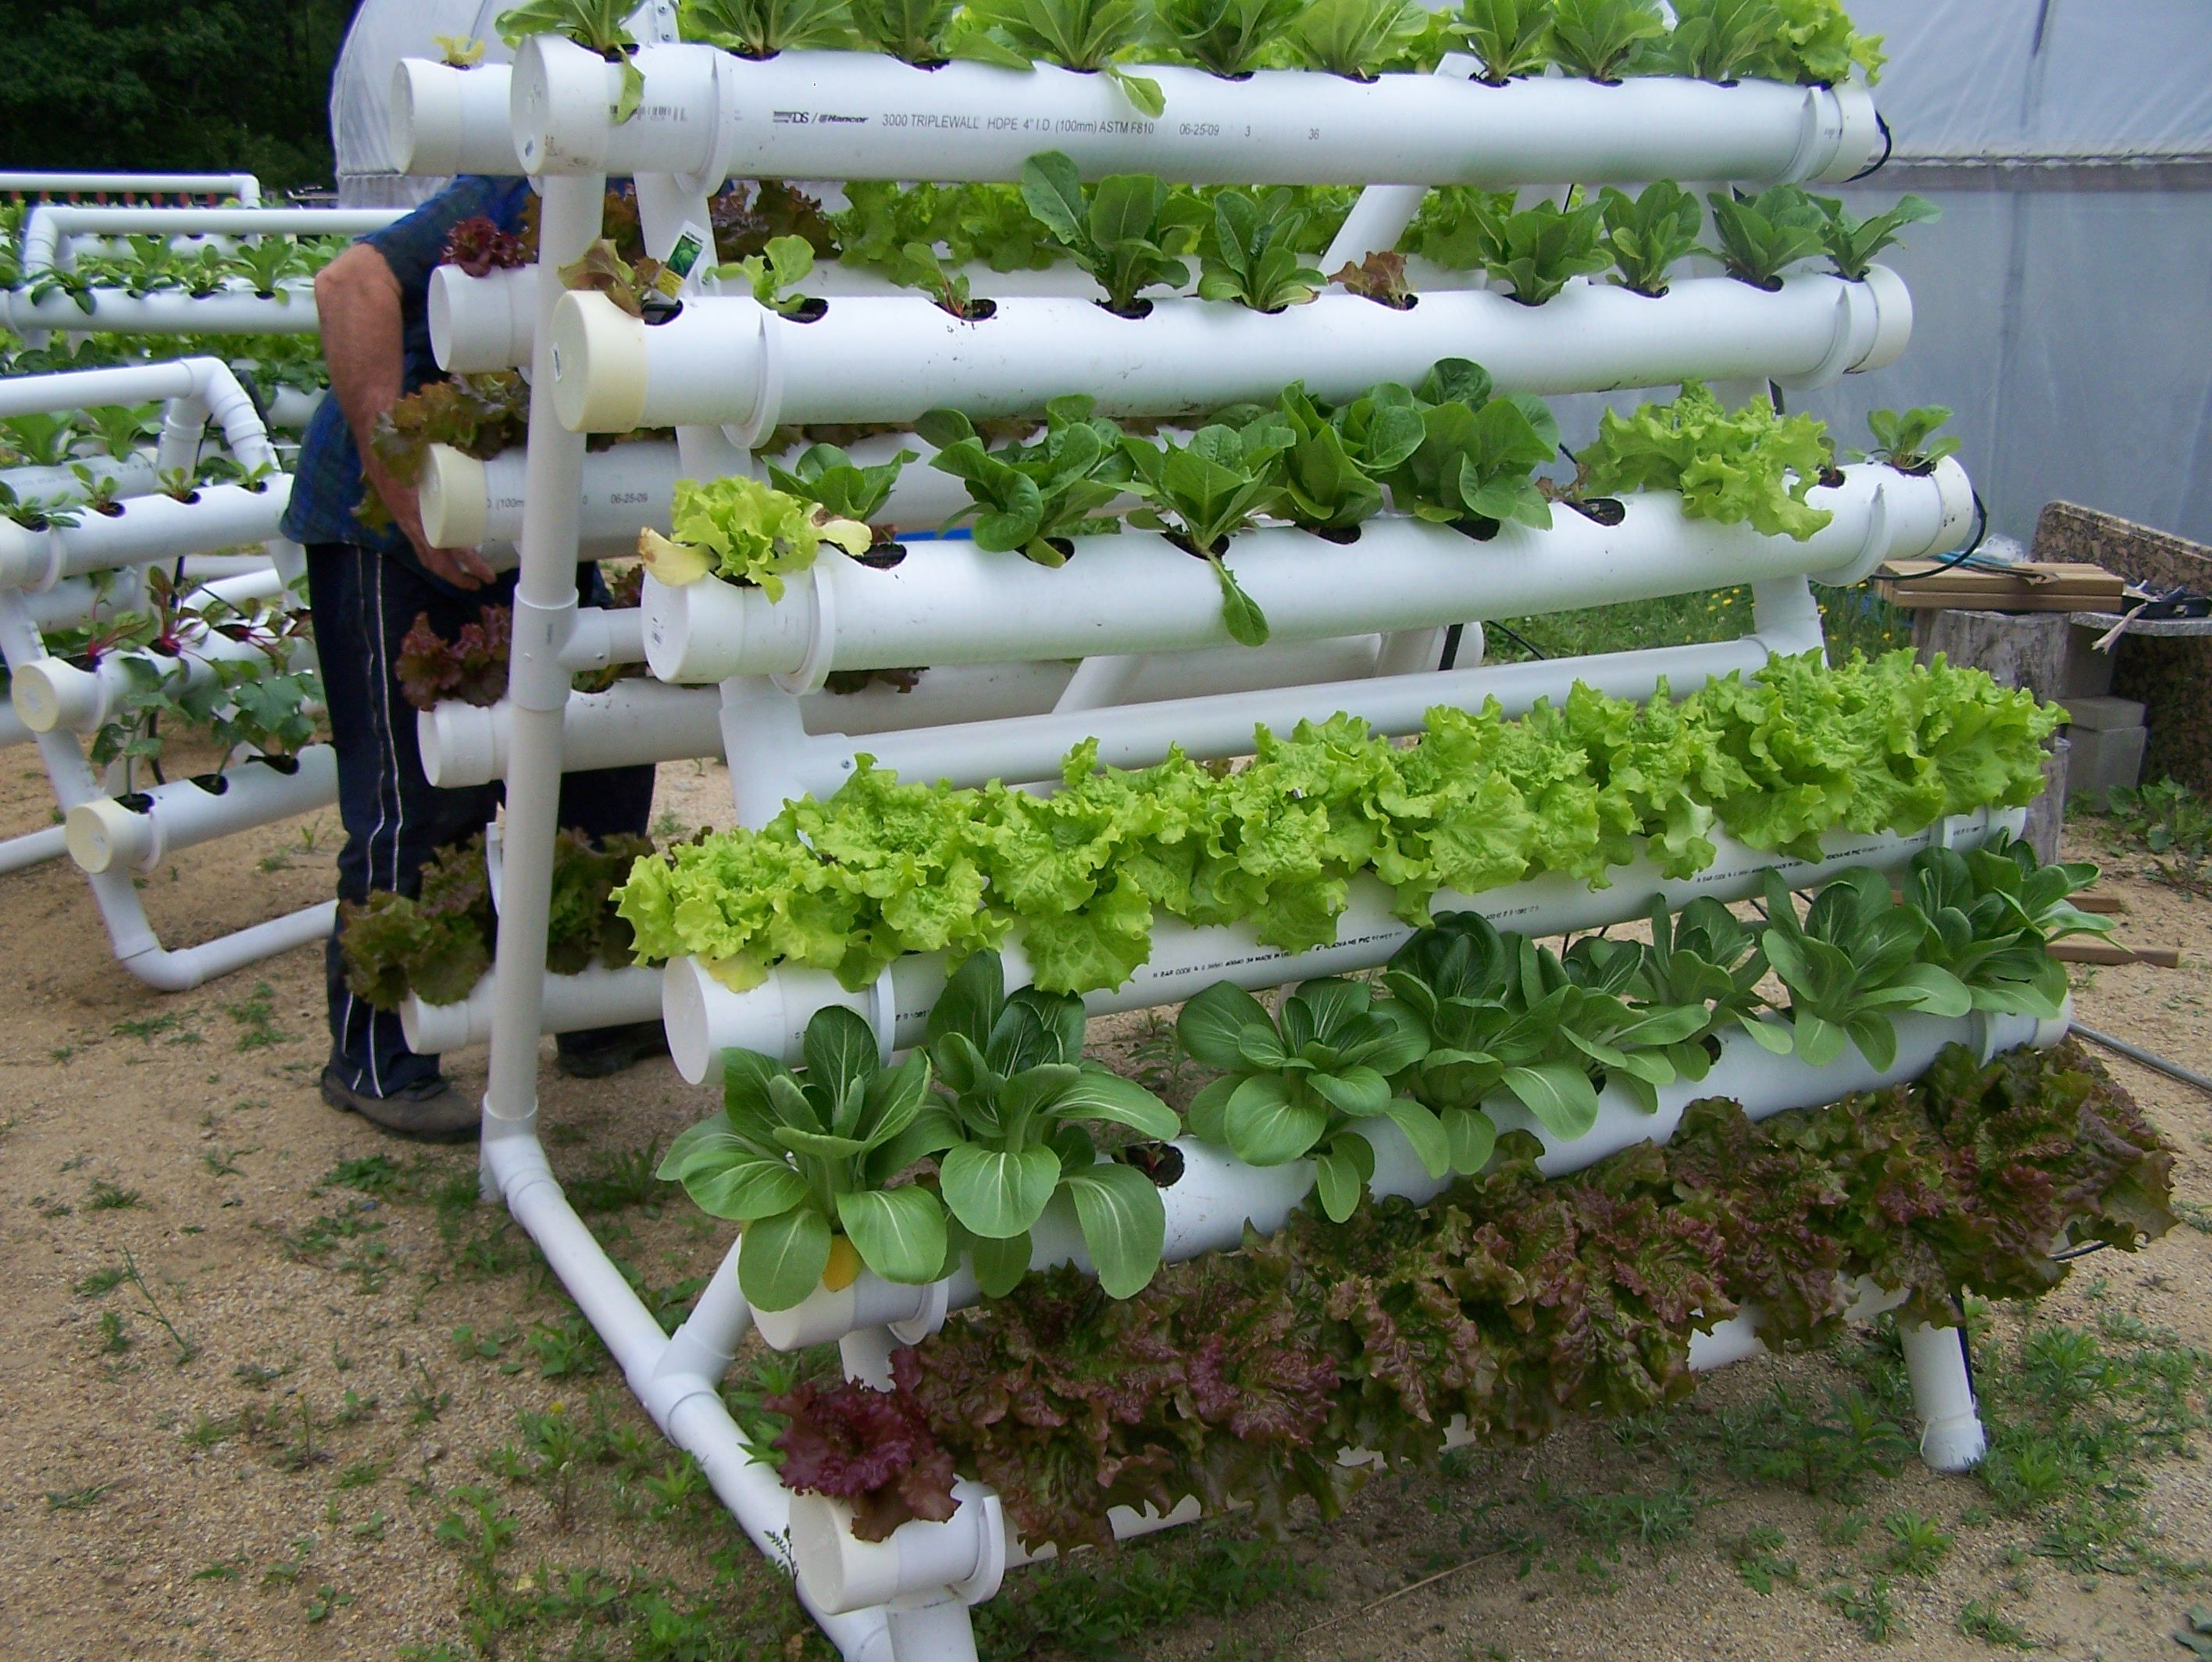 17 Best 1000 images about Hydroponics on Pinterest Gardens Vertical